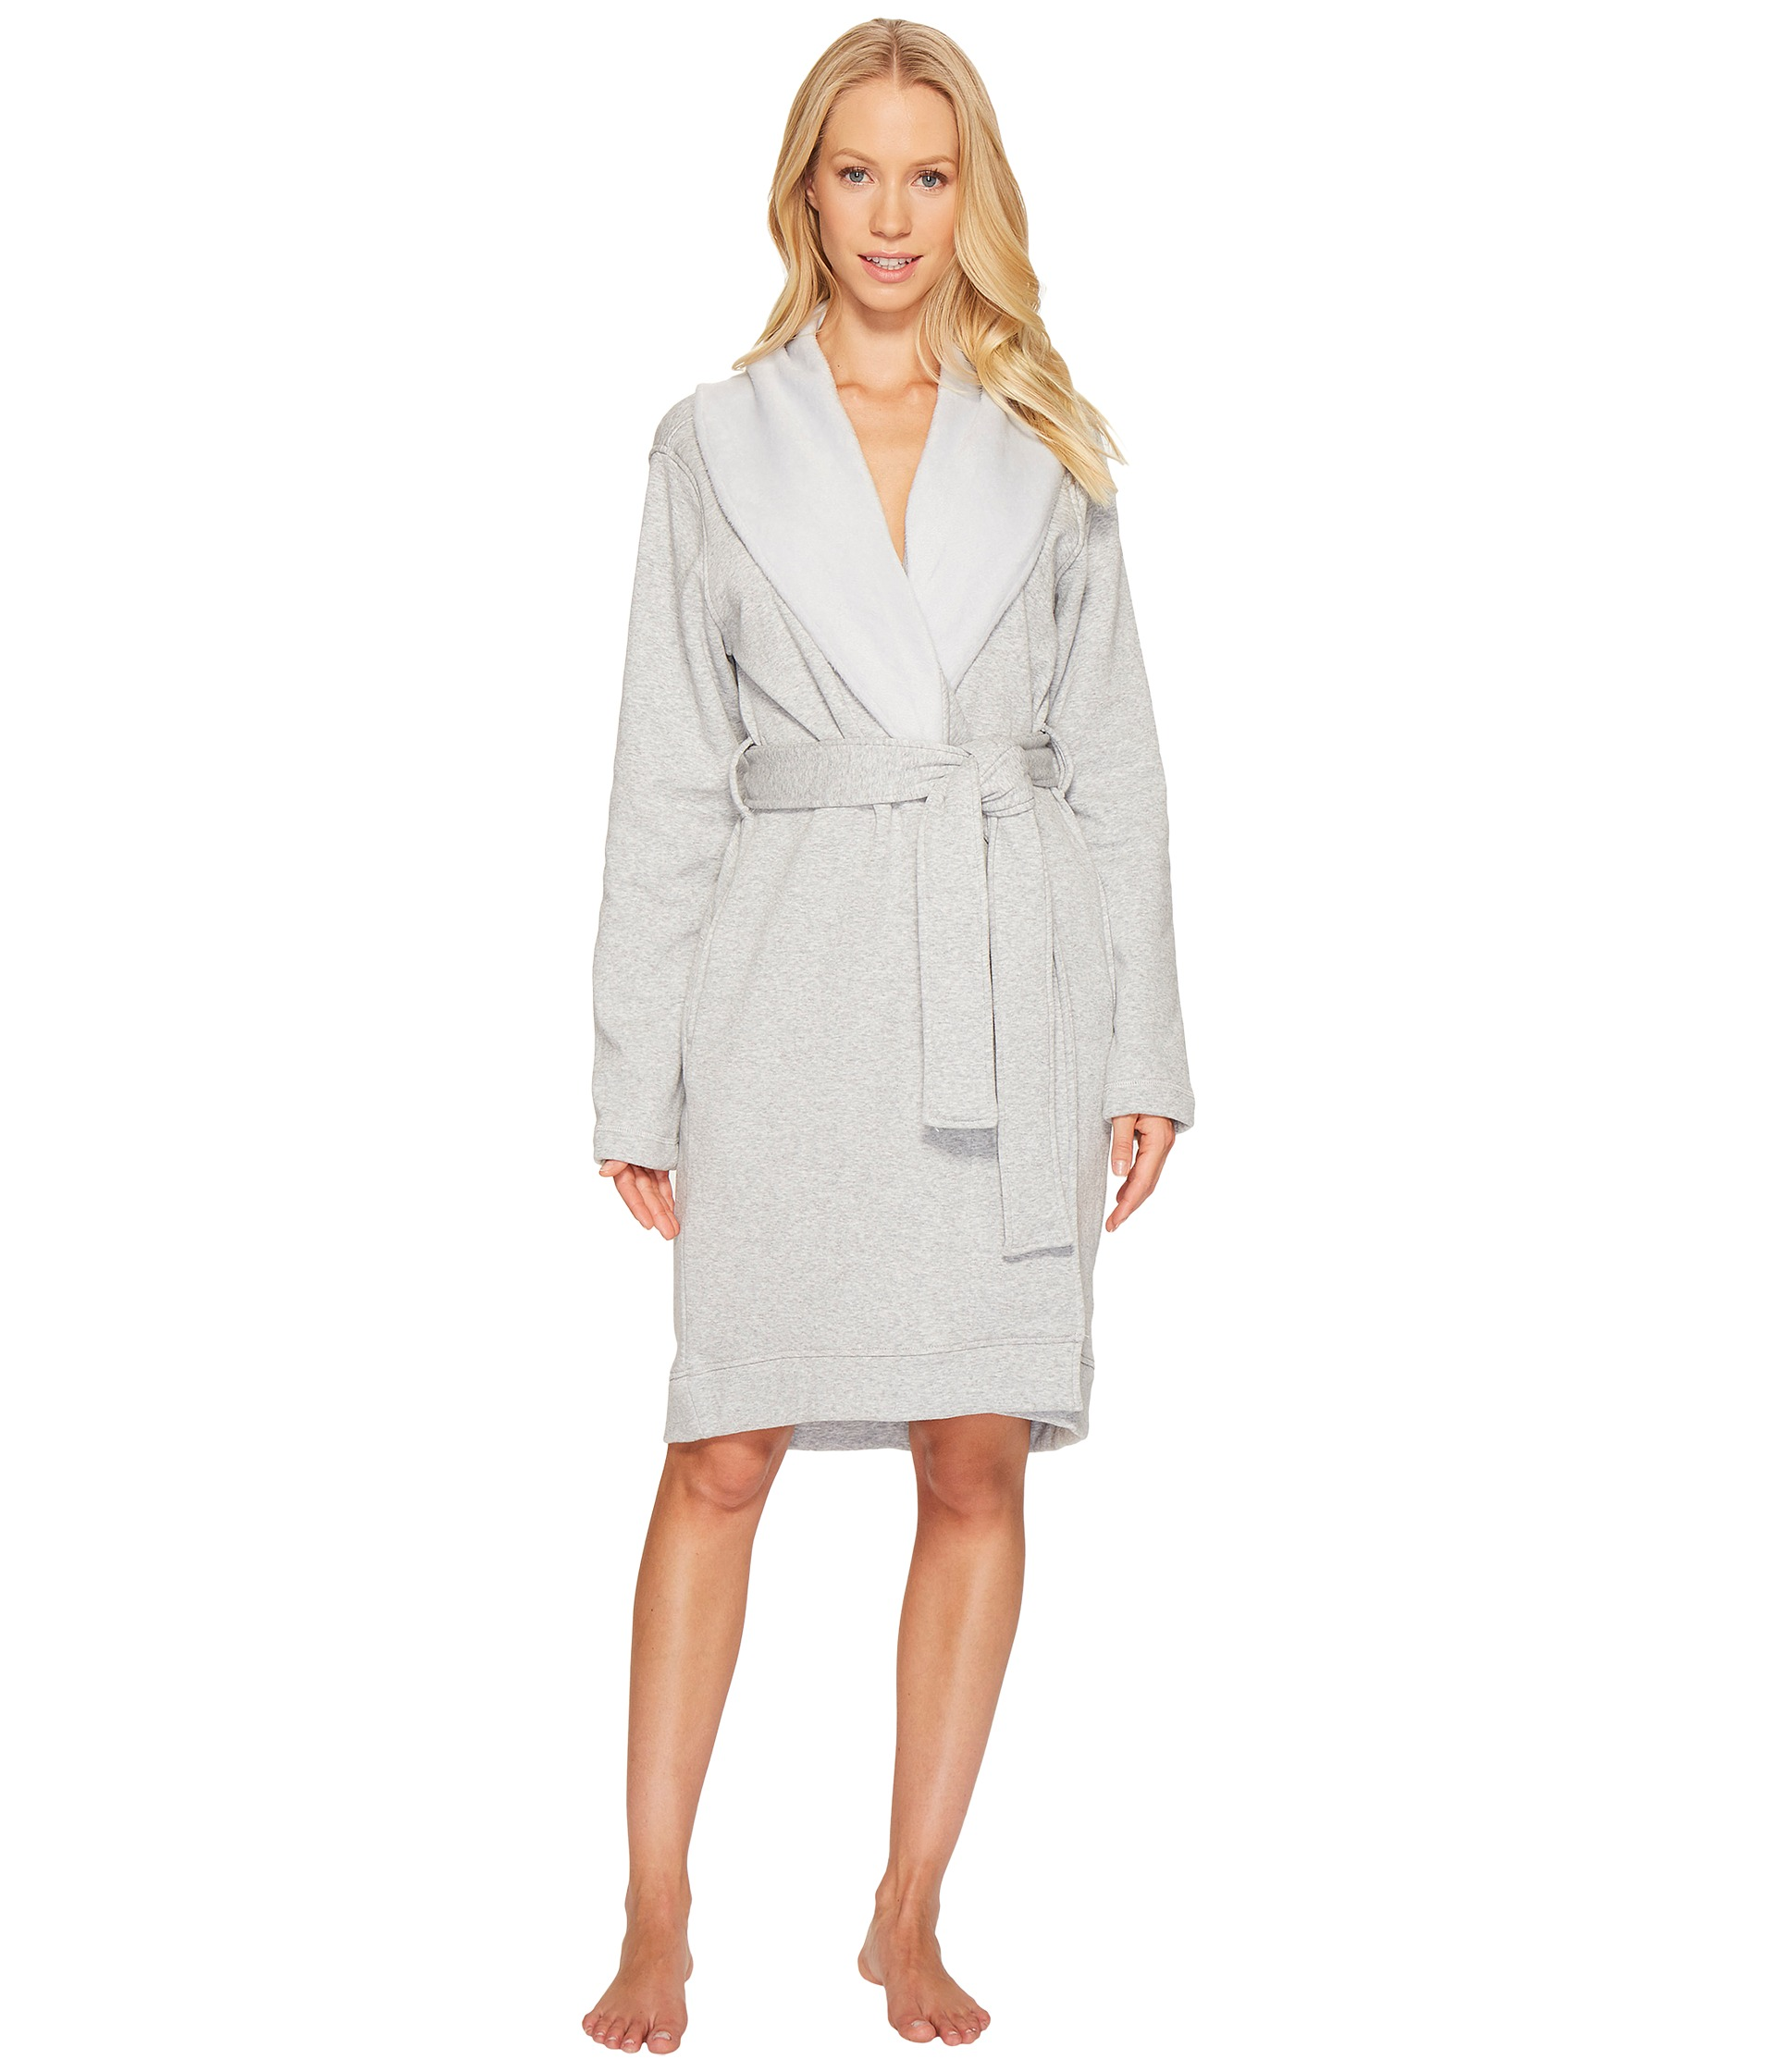 Robes xs - Free Image gallery